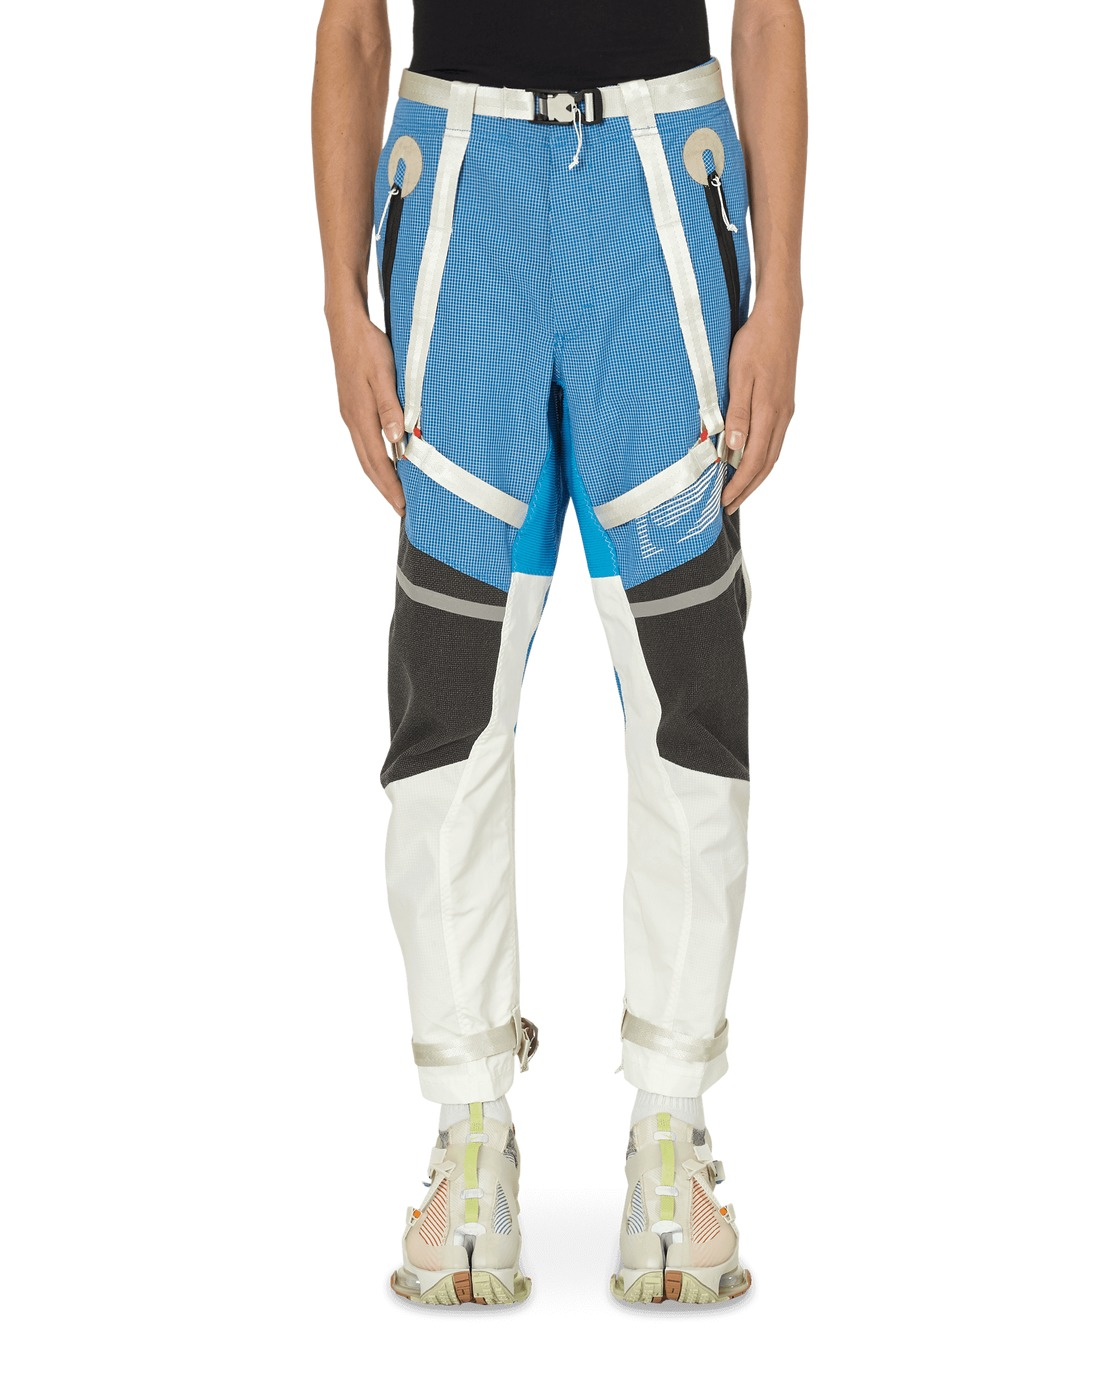 Nike Special Project Ispa Pants Battle Blue